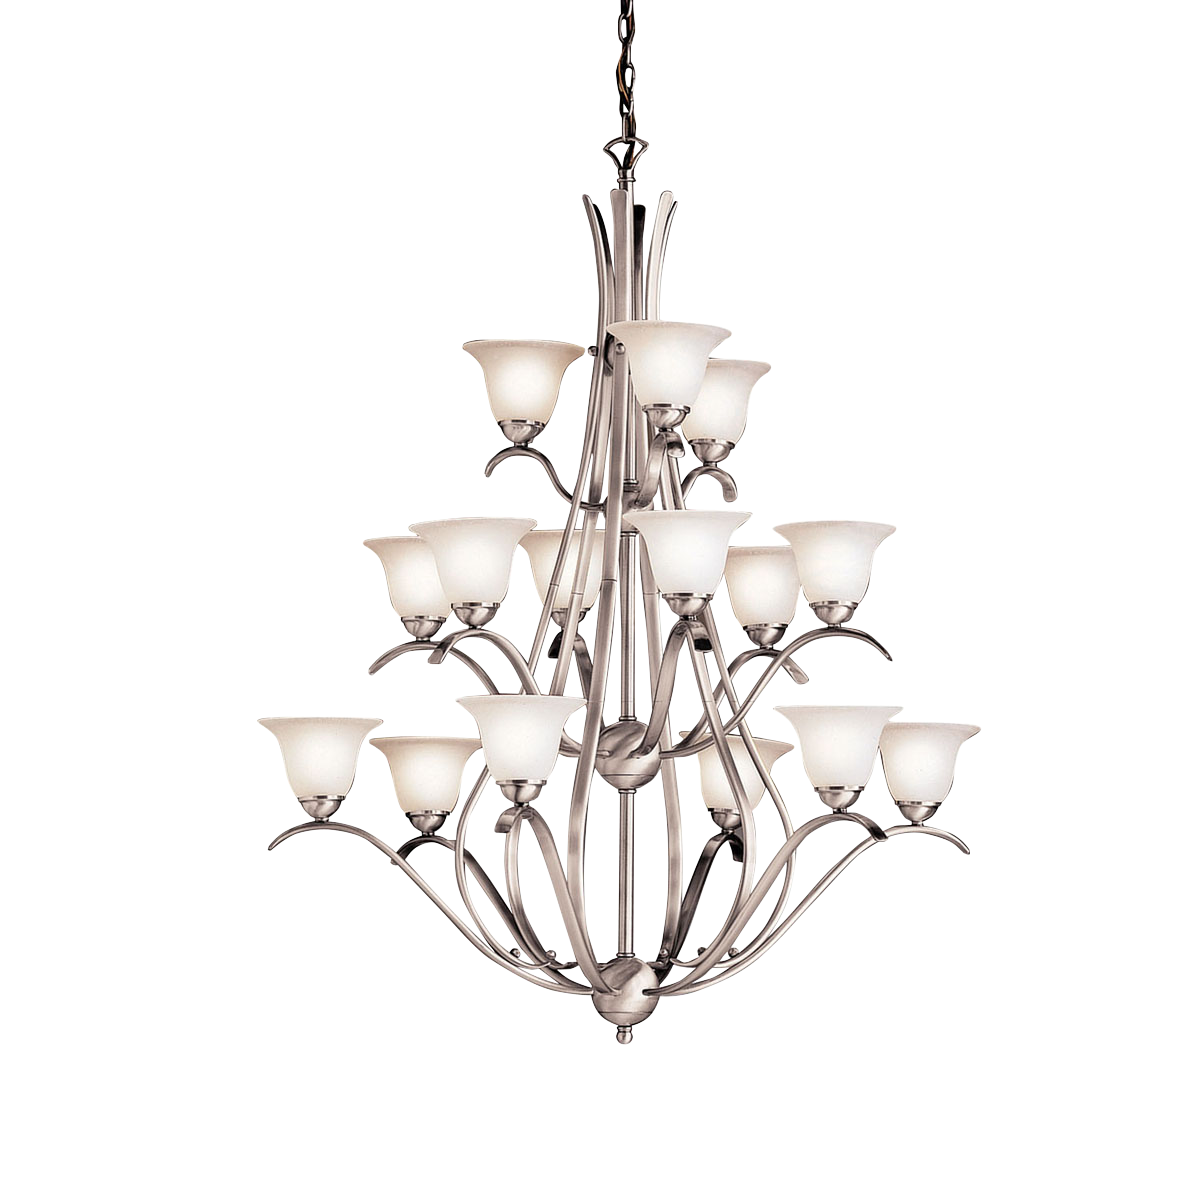 Awesome Dover 15 Light Multi Tier Chandelier By Cardello Lighting And Decor For Home Ideas